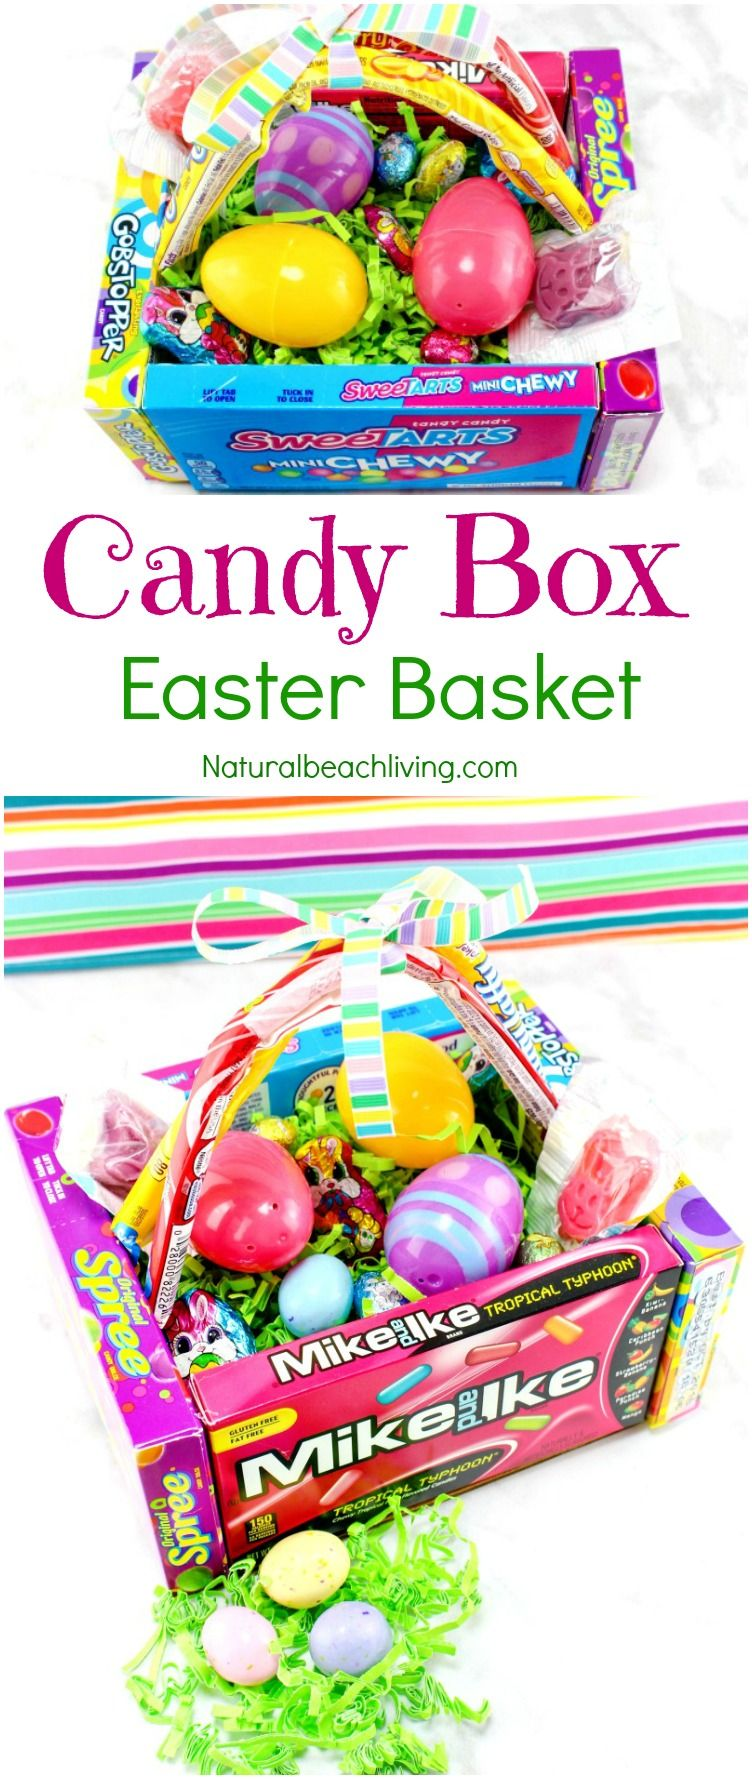 How to make the best diy candy box easter baskets candy boxes awesome diy candy box easter baskets diy edible easter egg basket that makes a cool gift perfect diy box frugal easter ideas teen gift ideas negle Gallery